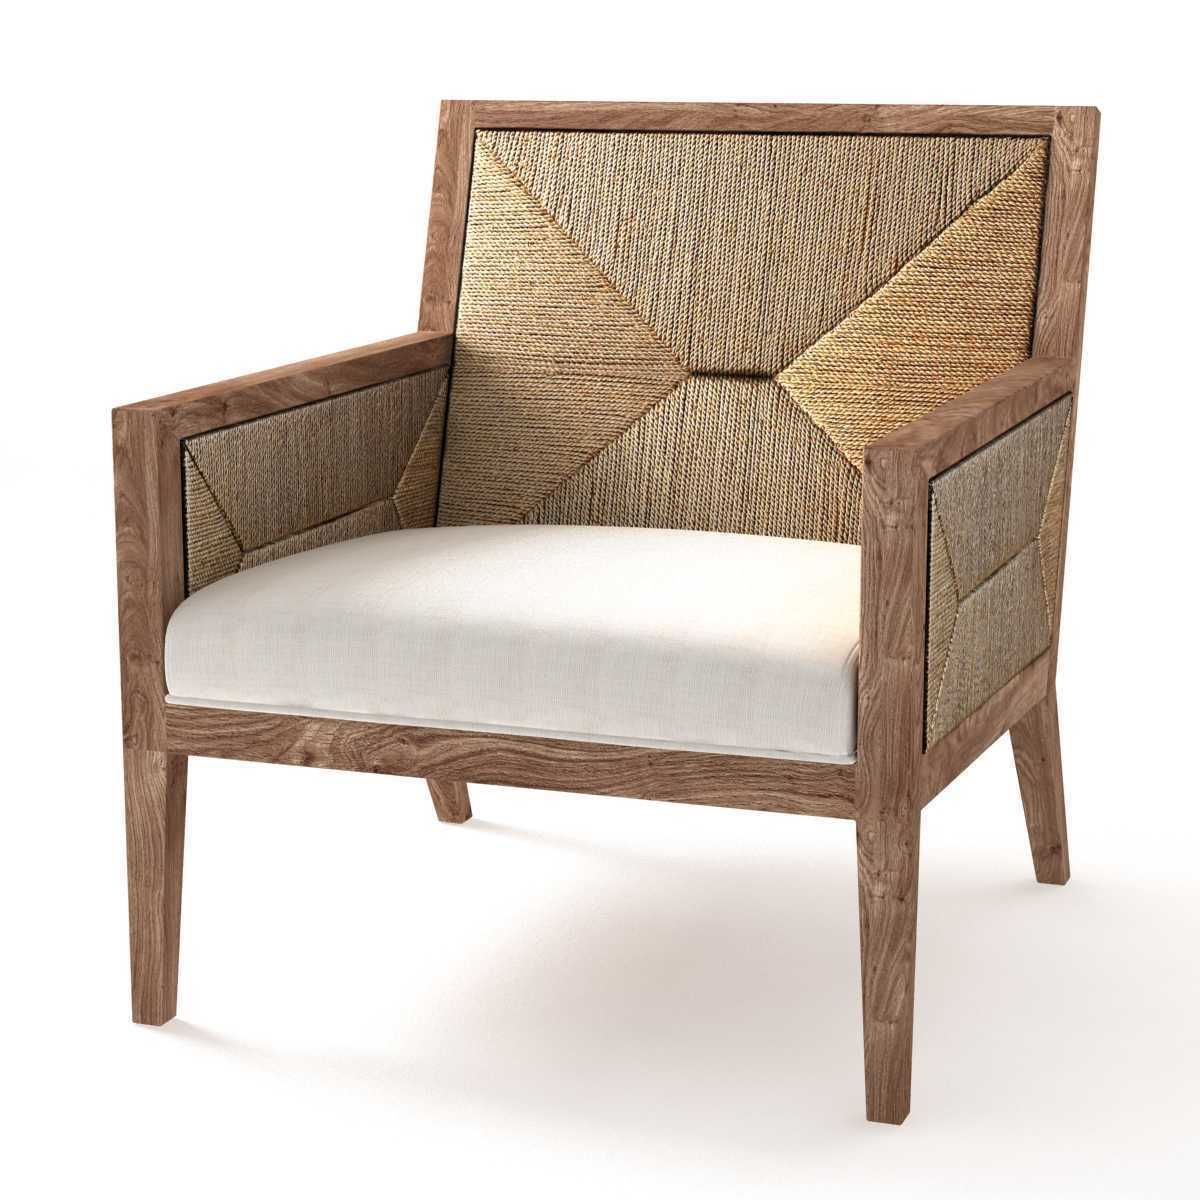 Restoration Hardware Milos Chair